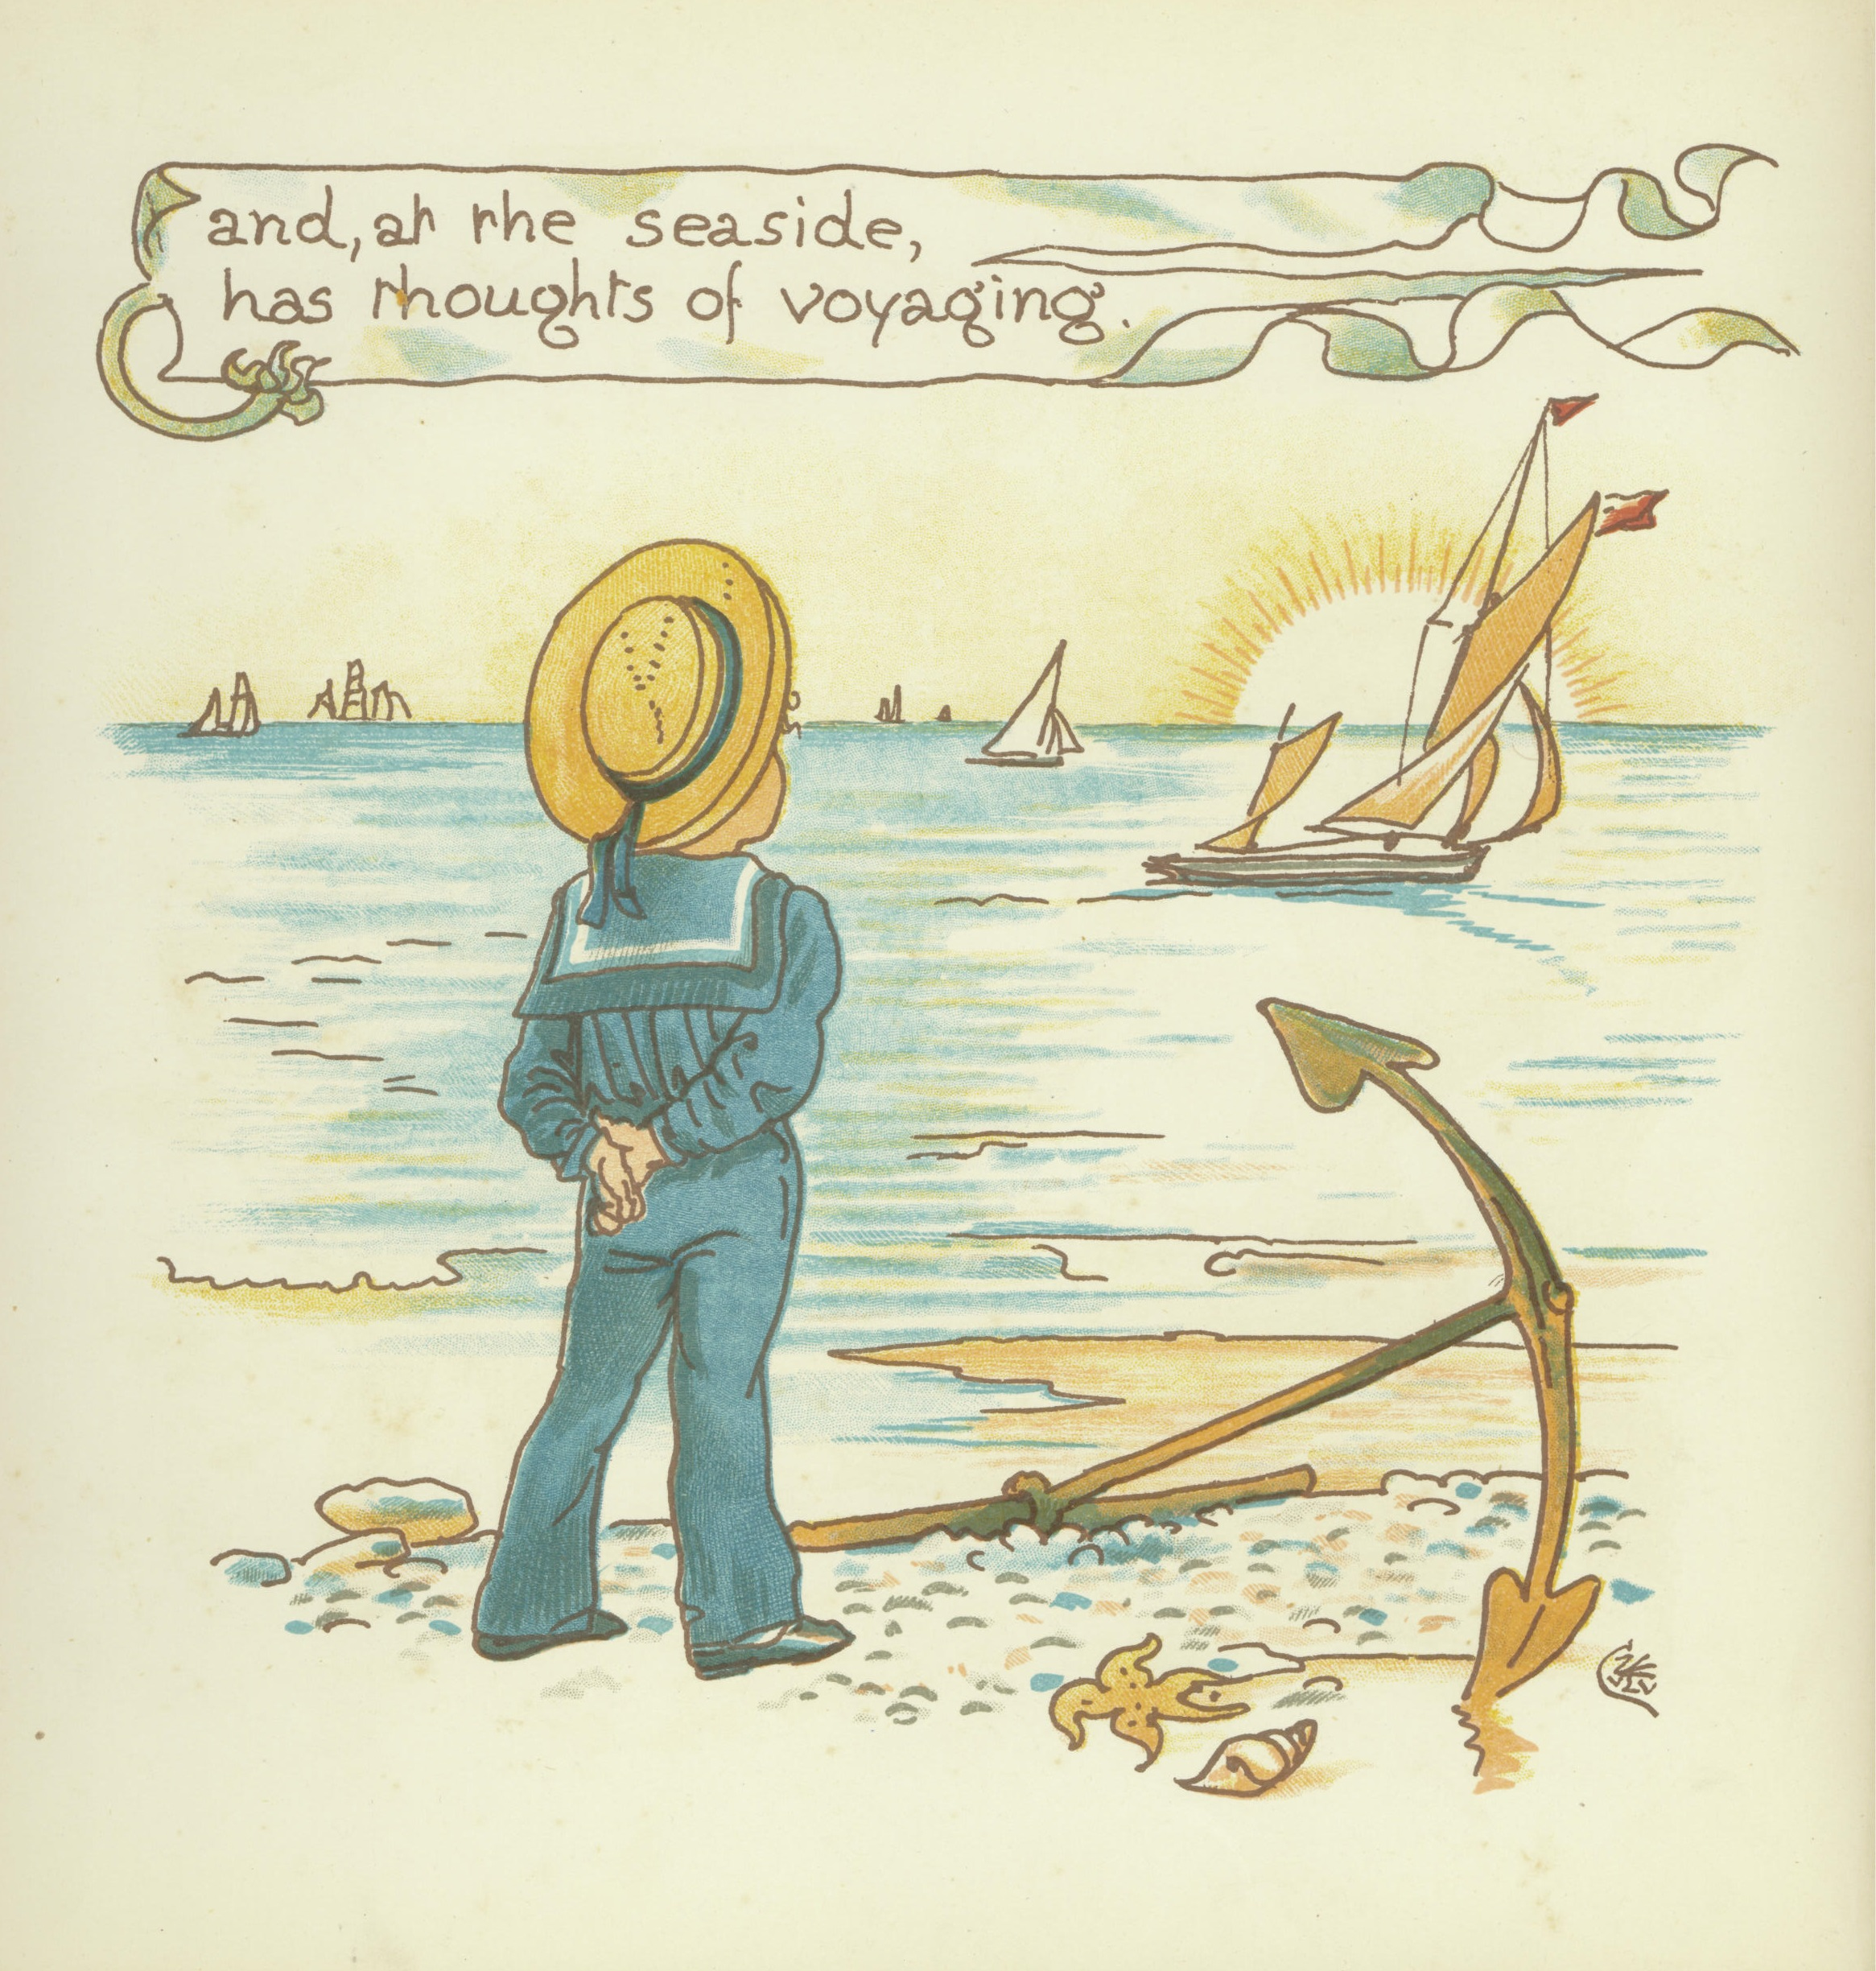 An illustration of a small boy looking out to sea